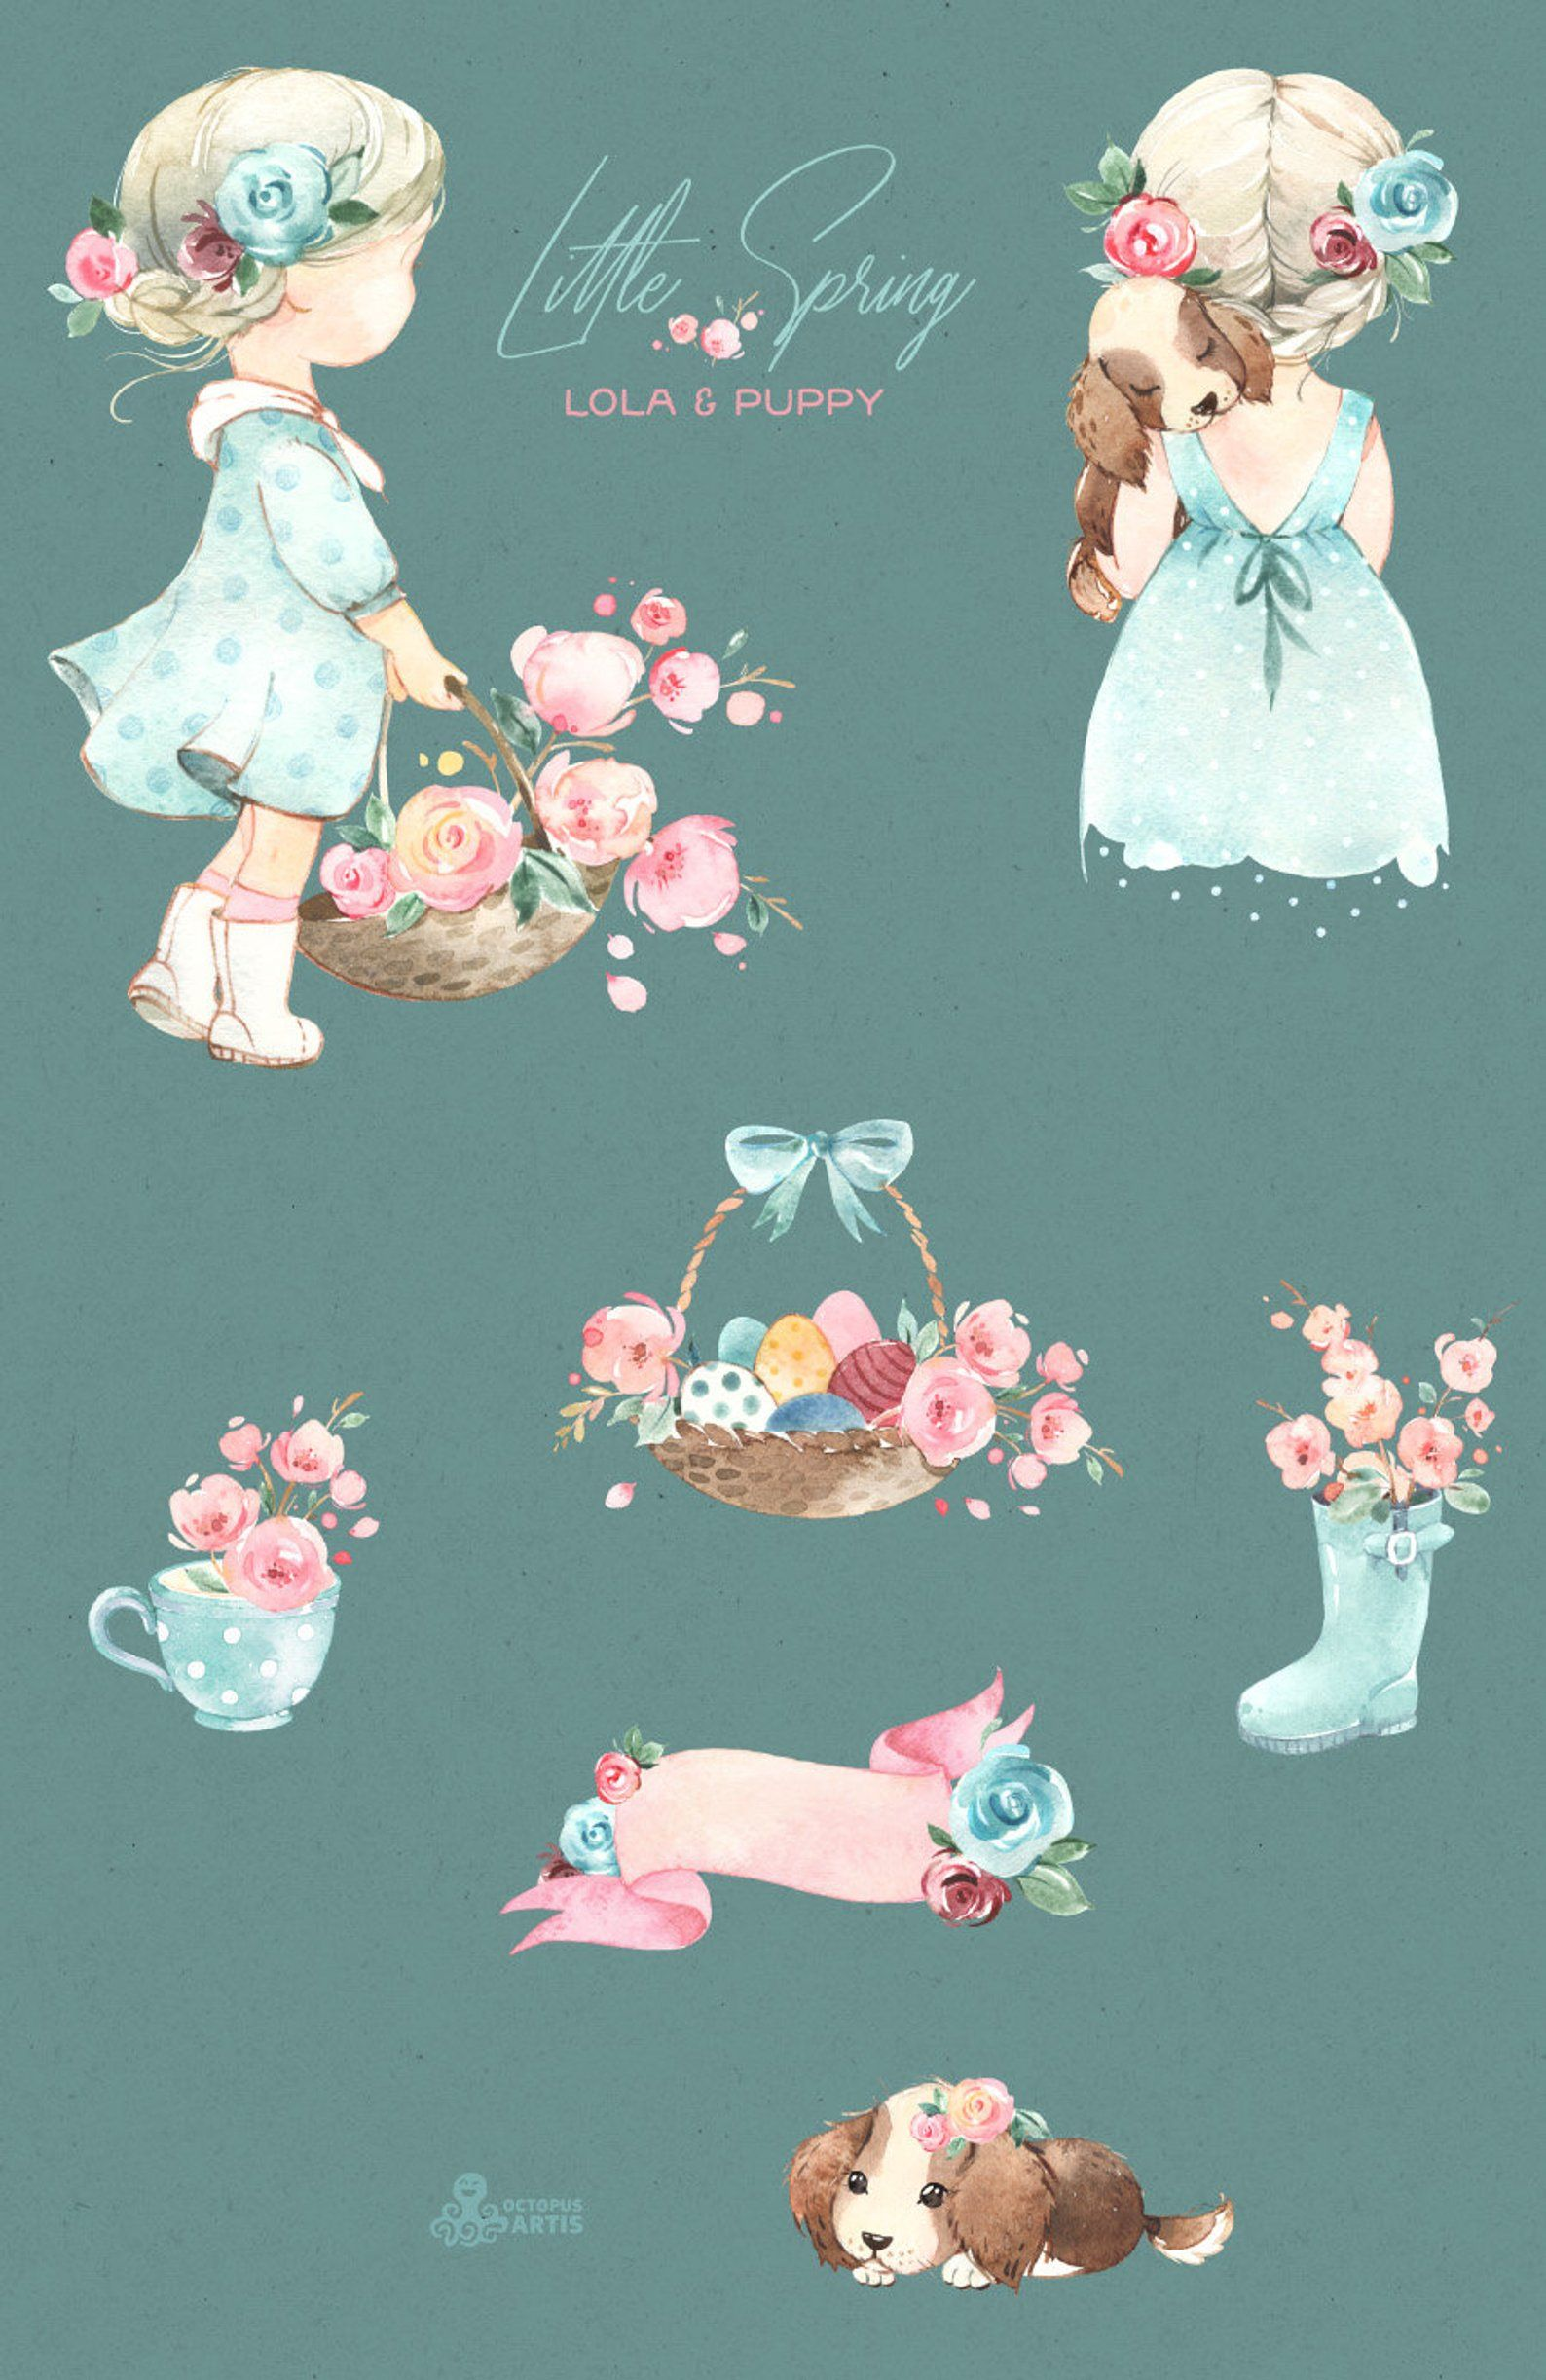 Little Spring. Lola & Puppy. Watercolor clipart, girl, doggy.